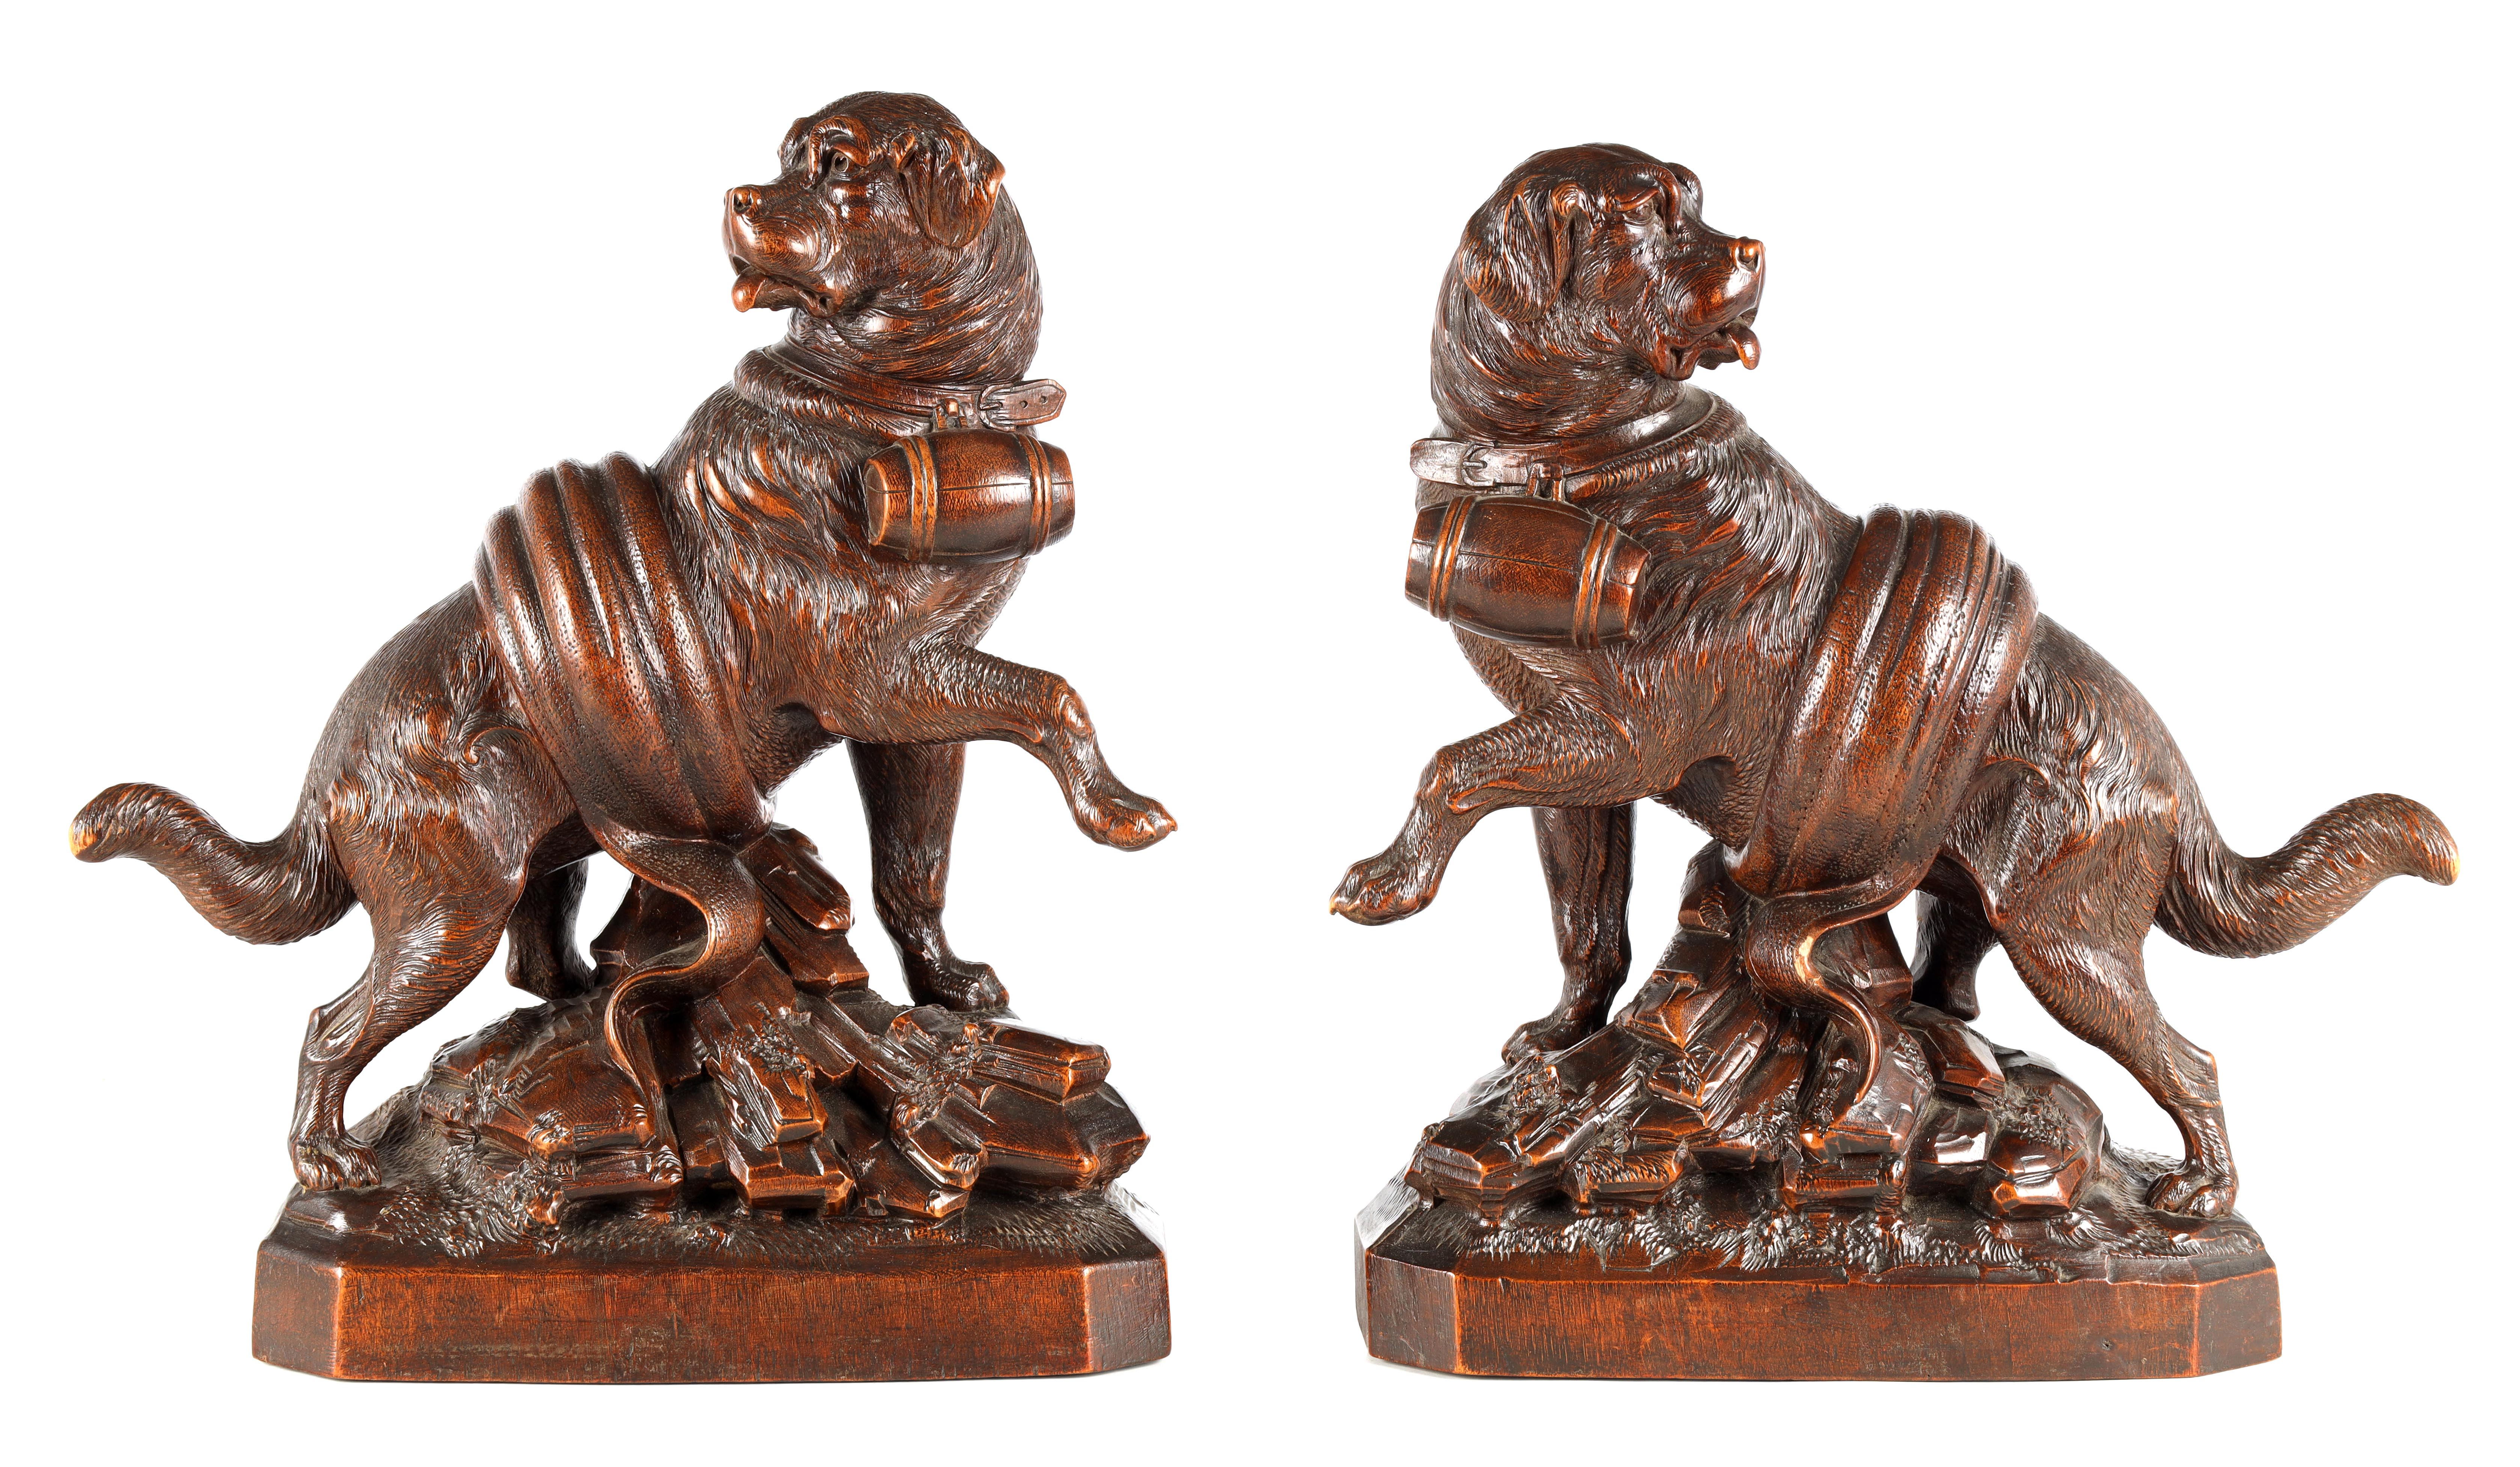 A GOOD QUALITY PAIR OF LATE 19TH CENTURY BLACK FOREST CARVED SCULPTURES modelled as Saint Bernards